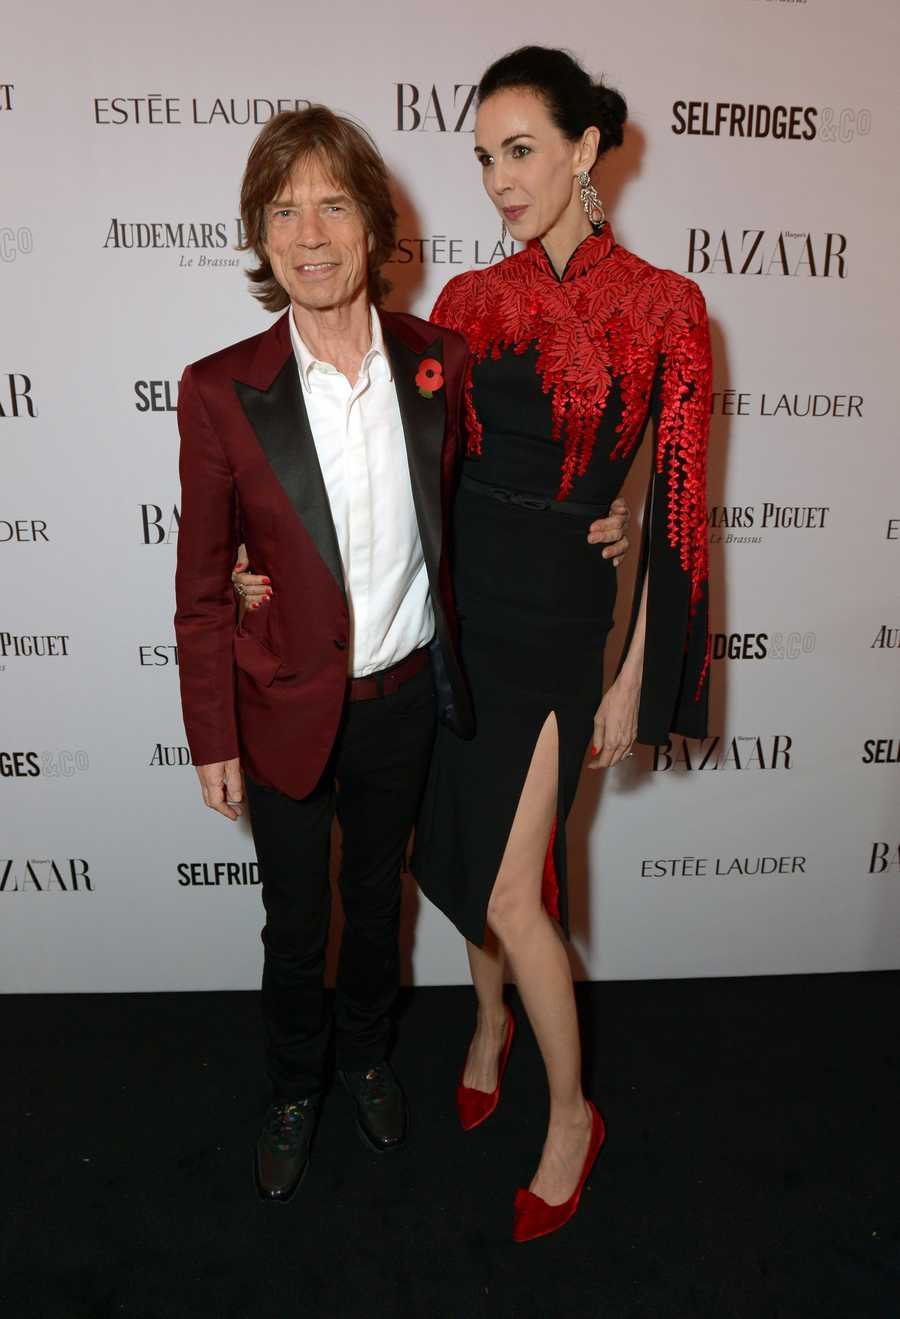 L'Wren Scott was a fashion designer and celebrity stylist who was Mick Jagger's girlfriend. The Utah-born Scott had her own fashion label popular with celebrities. She was a fixture on Jagger's arm and, at around 6-foot-3, towered over her famous boyfriend.  She founded her high-end label in 2006 and recently created a more affordable line of clothes with Banana Republic.